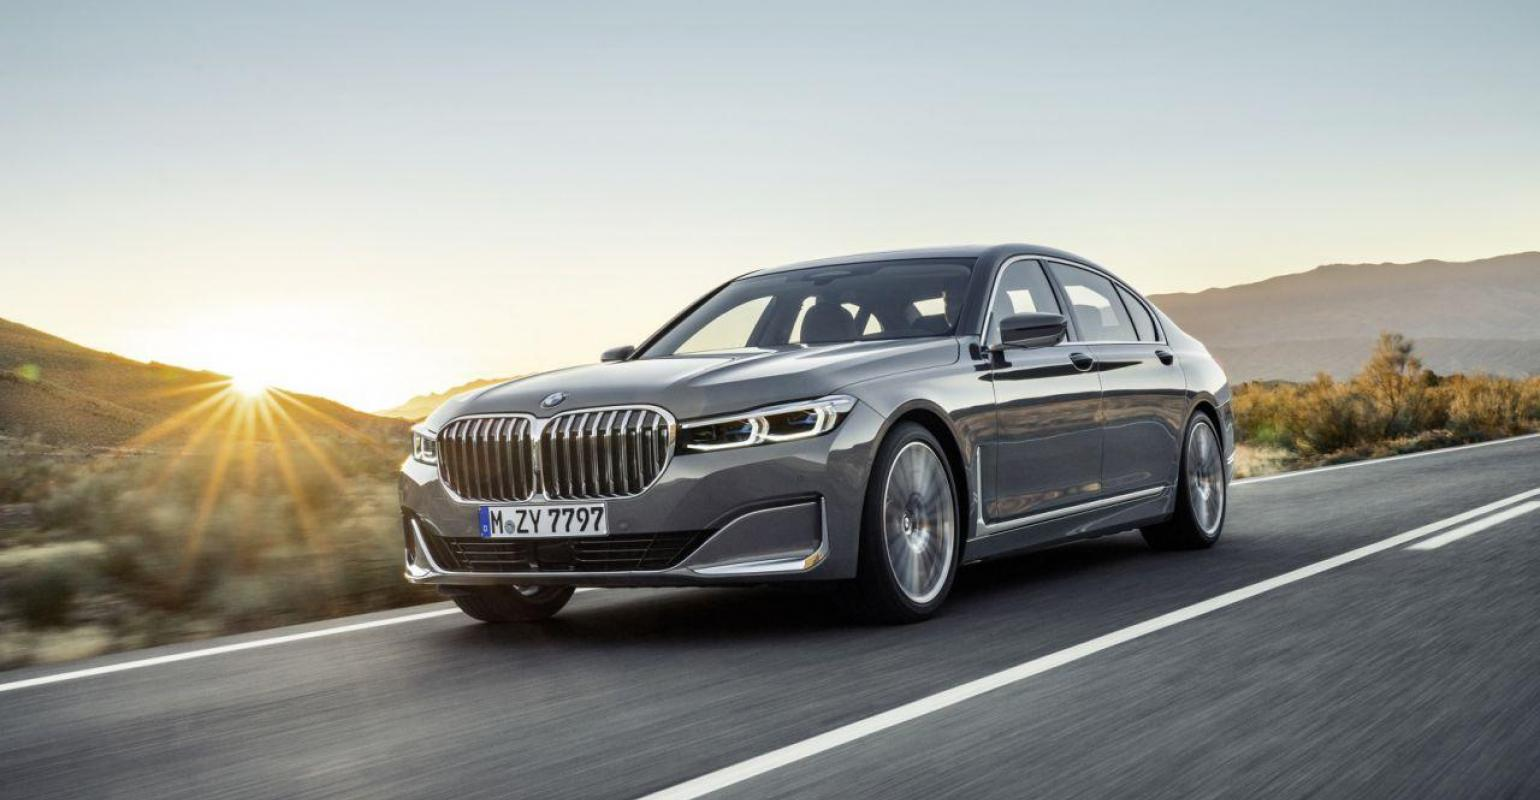 Bmw Says 745e Xdrive S Plug In Hybrid Drivetrain Offers More Range